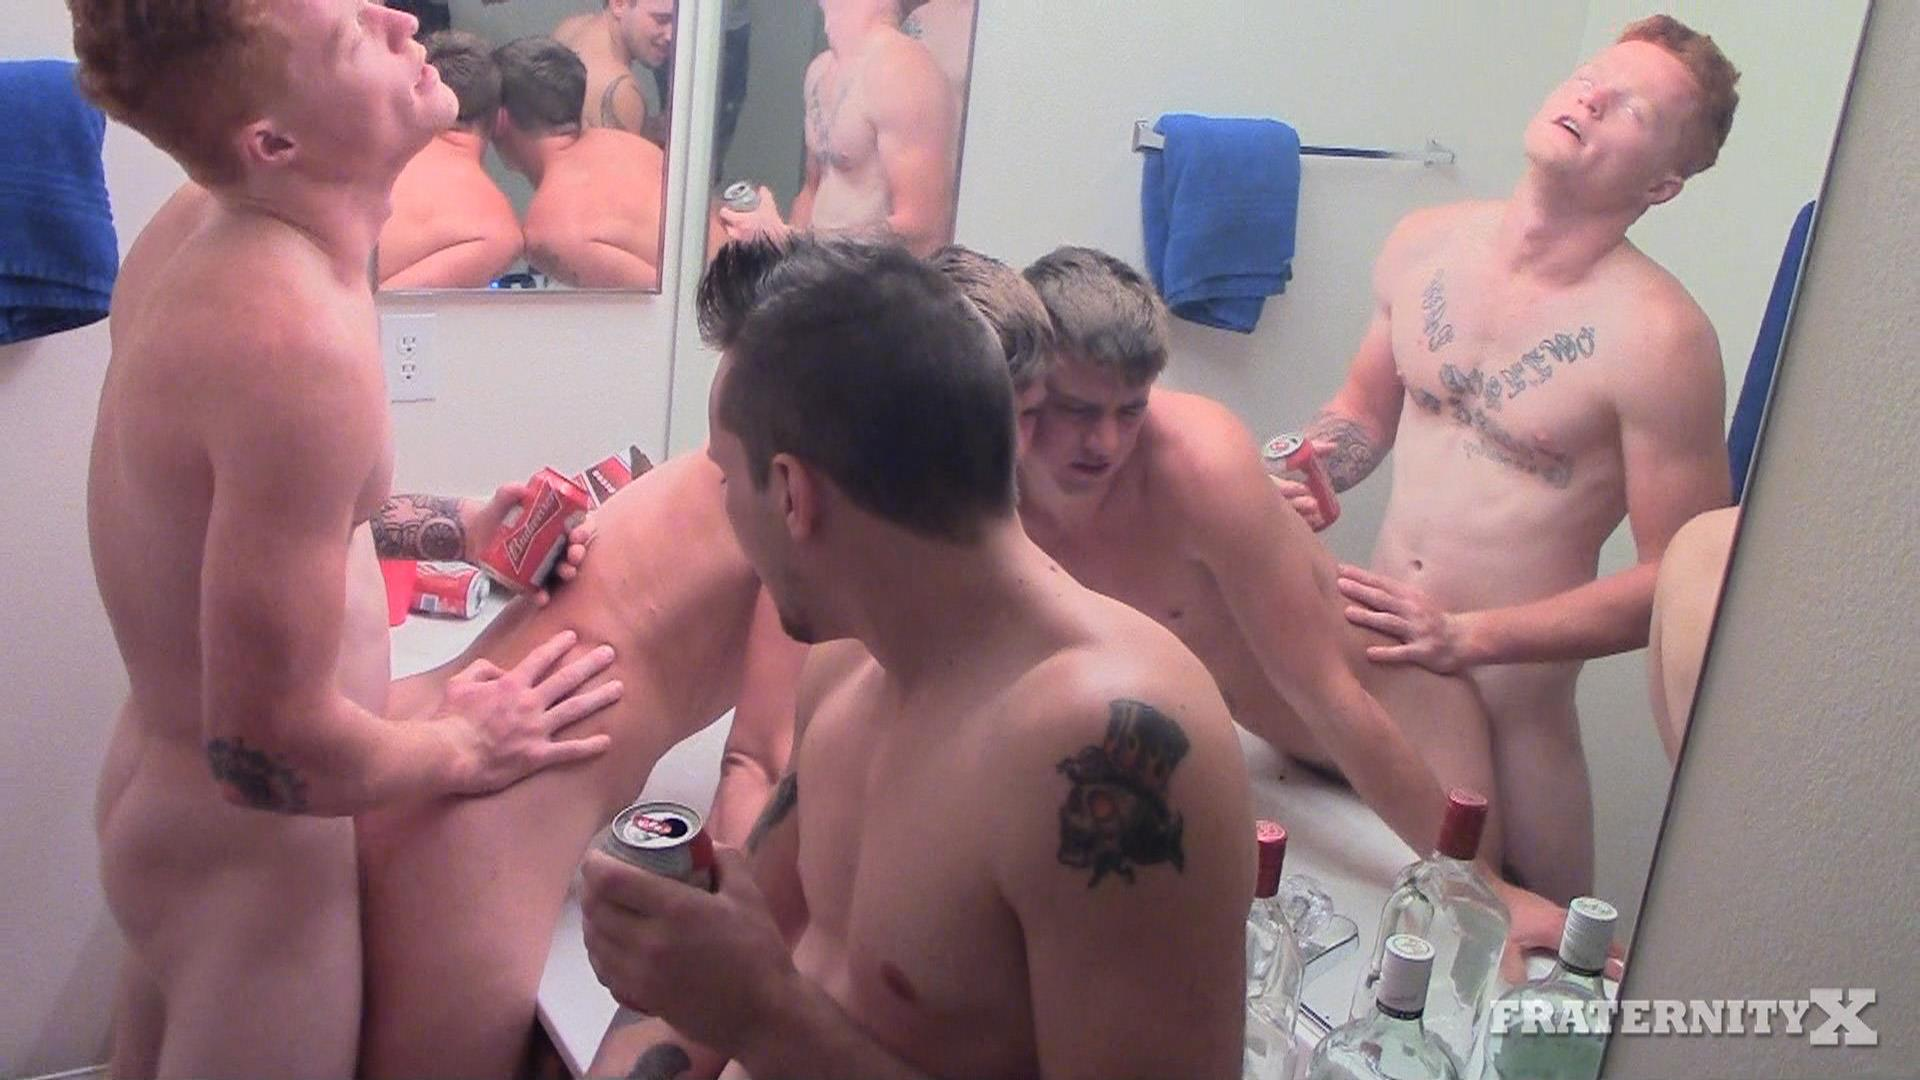 Gay frat boys video